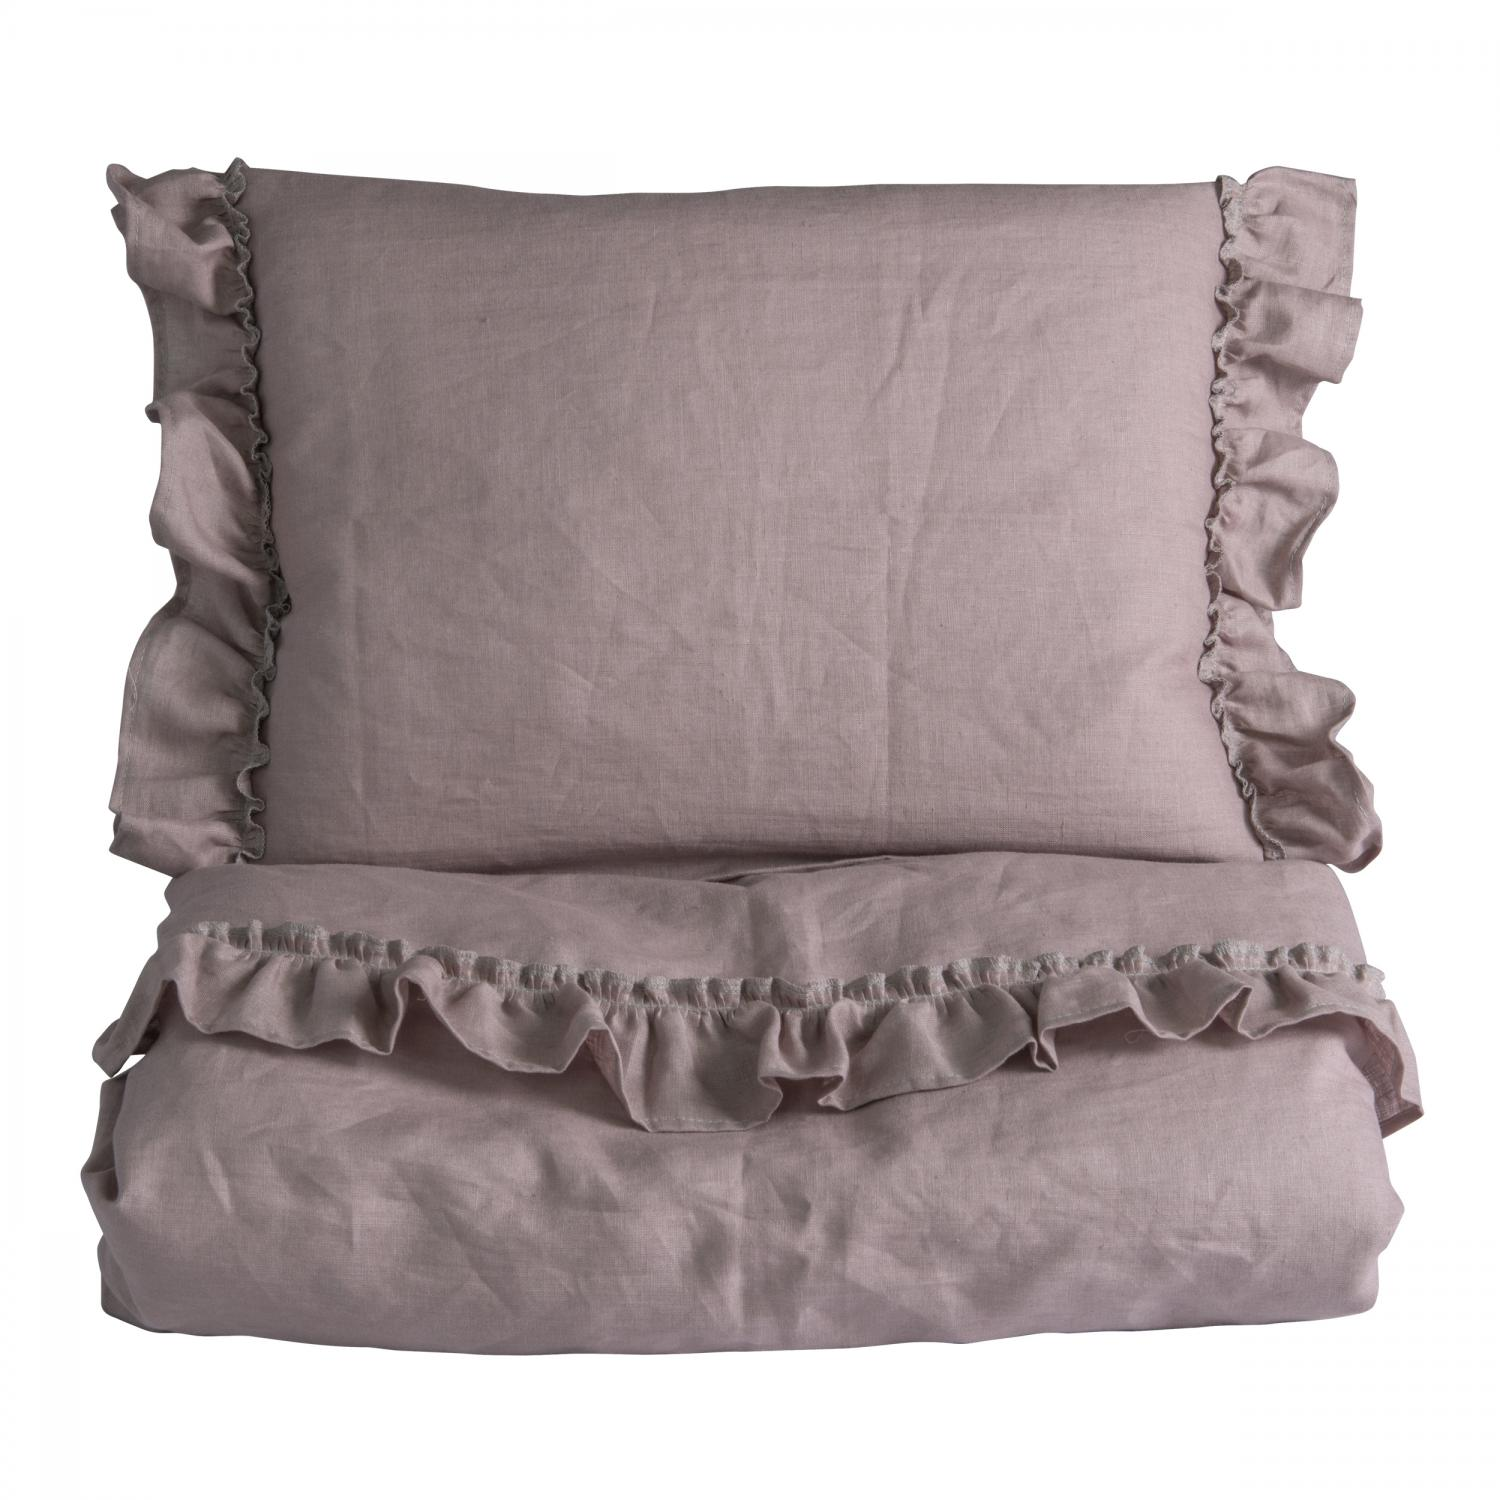 Duvet set ruffle | Dusty pink | Mood ruffles